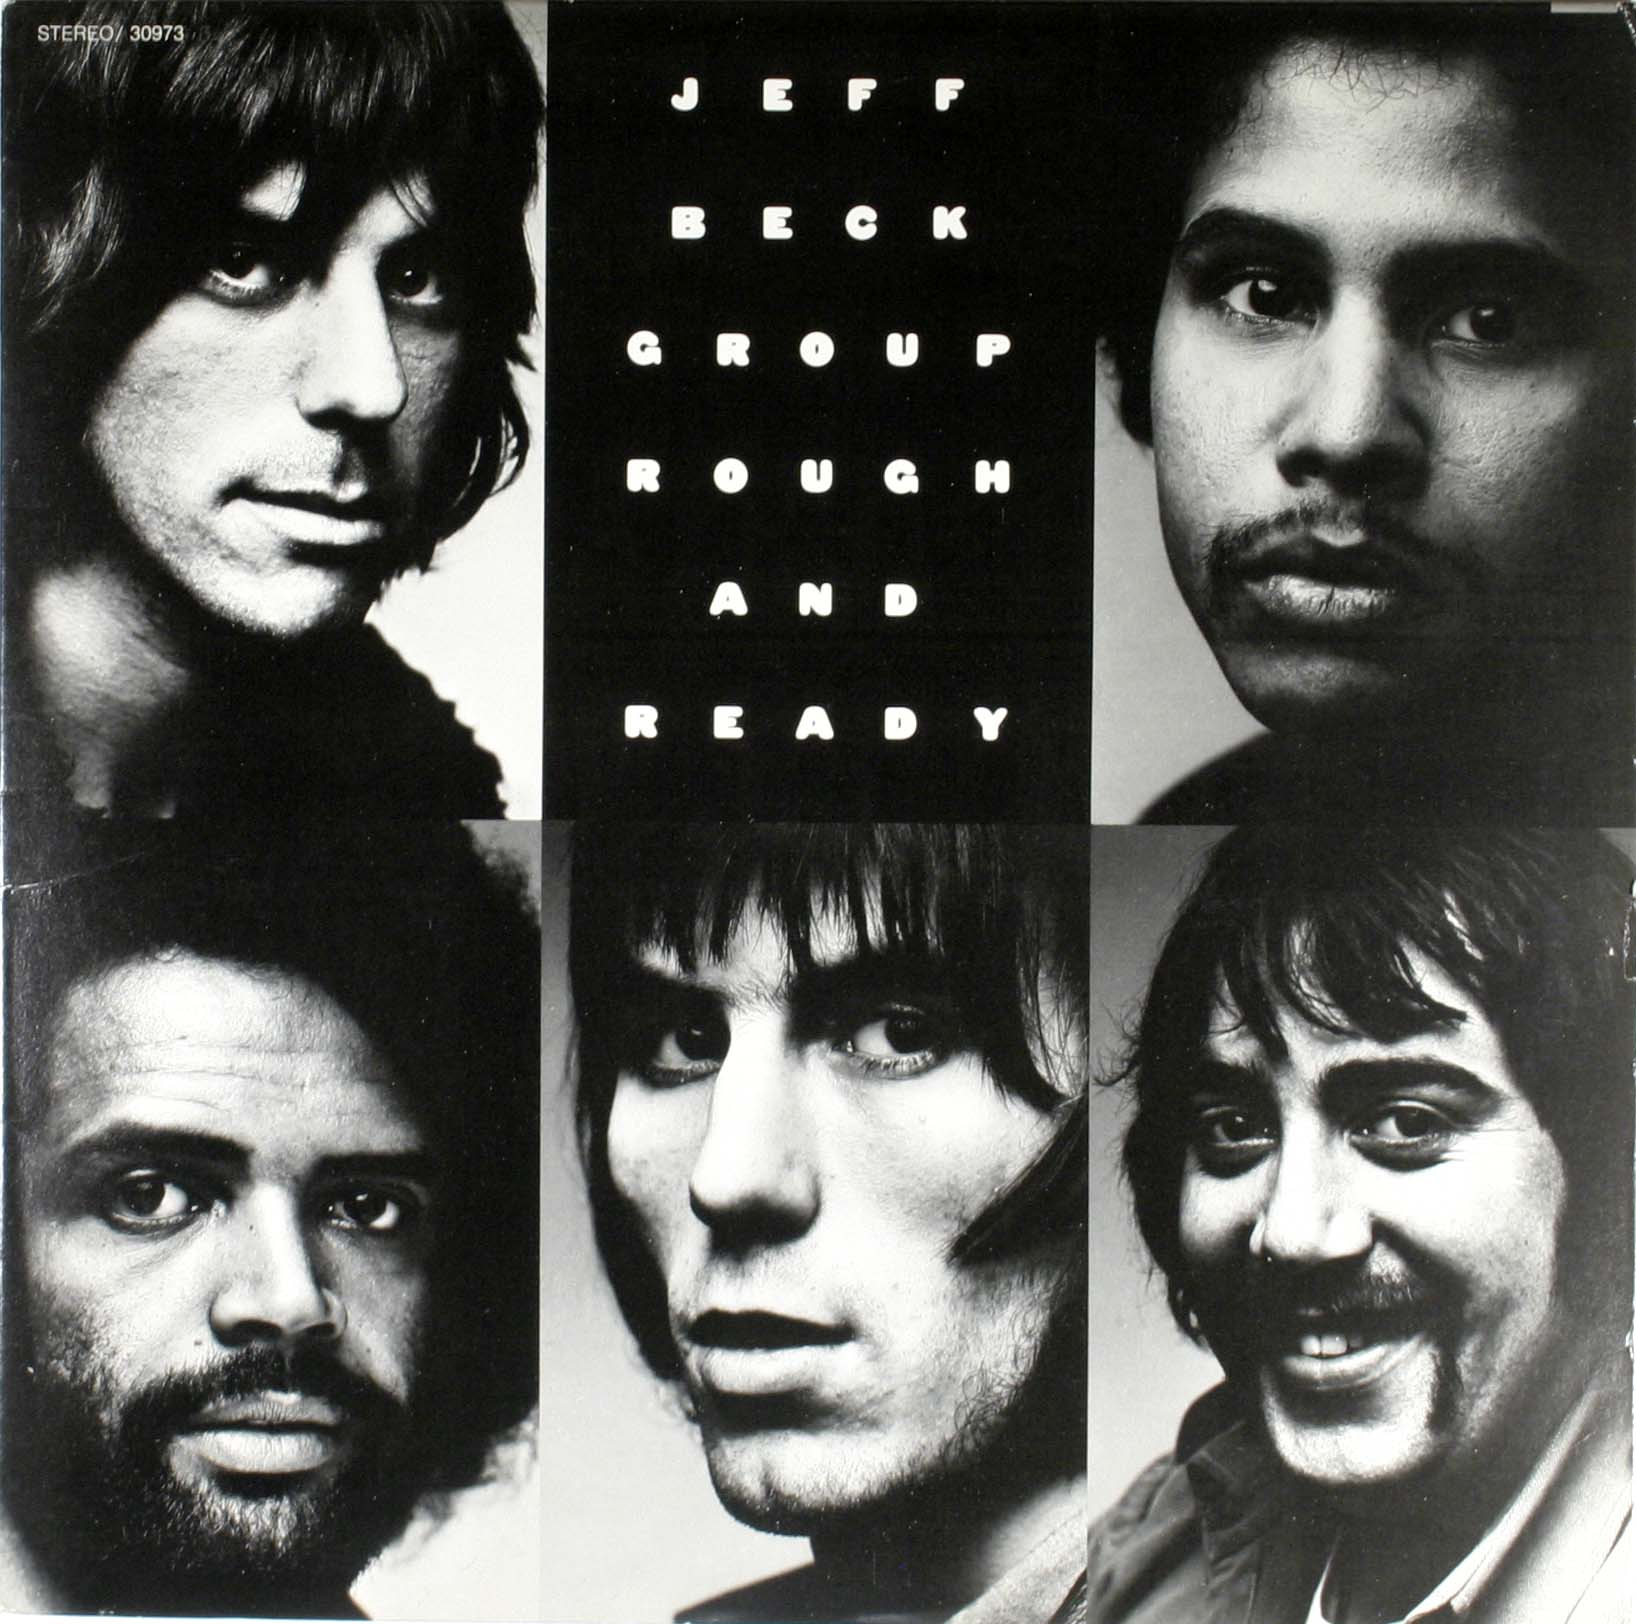 Jeff Beck Group Rough+And+Ready LP